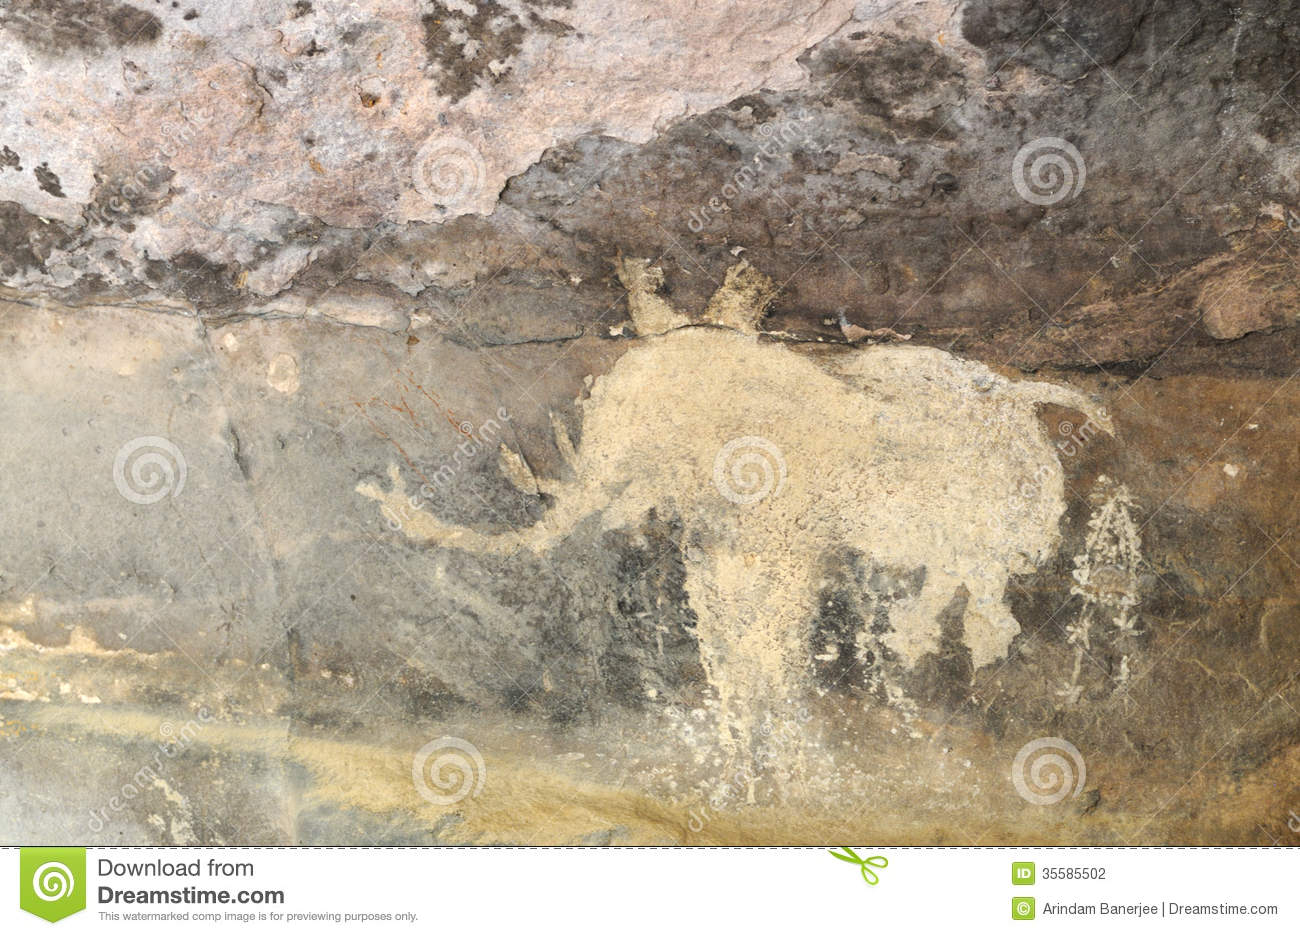 Images Of Cave Paintings In India